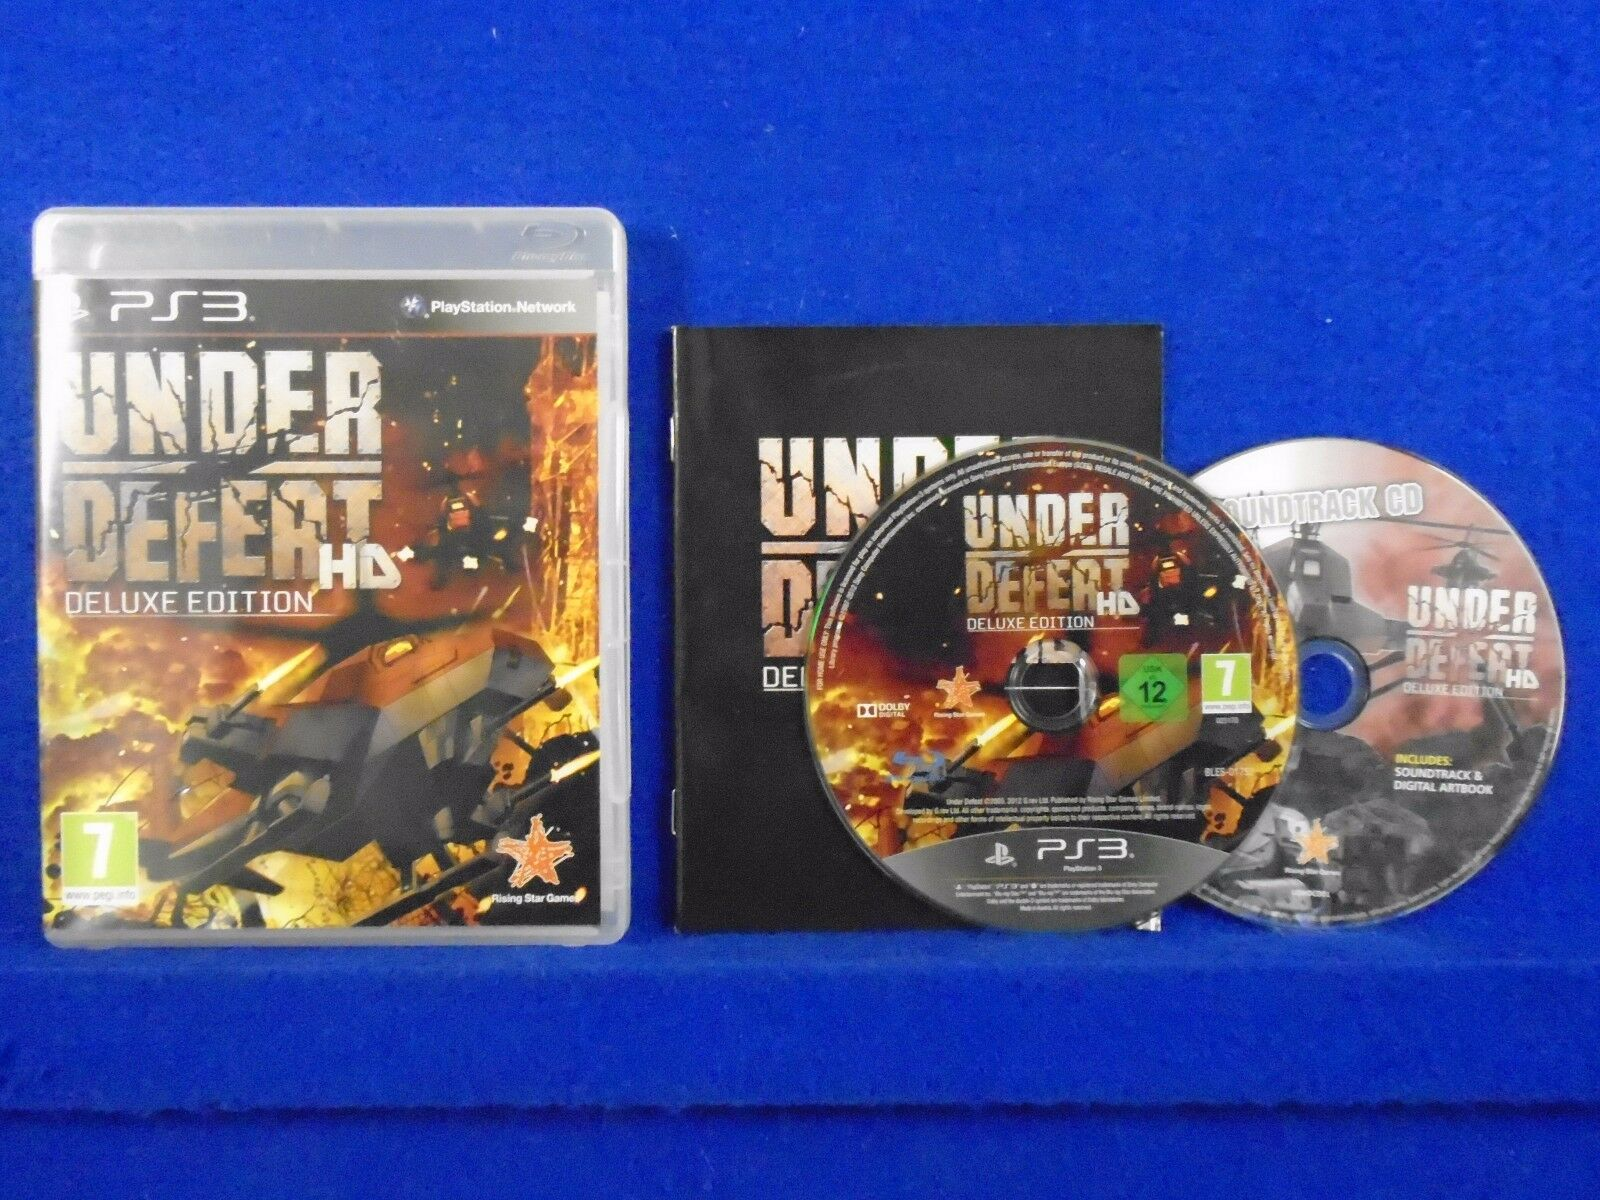 Ps3 Under Defeat Hd Deluxe Edition Shmup Soundtrack Cd Pal English Ps4 Nba 2k19 20th Anniversary Region 3 1 Of 1only Available